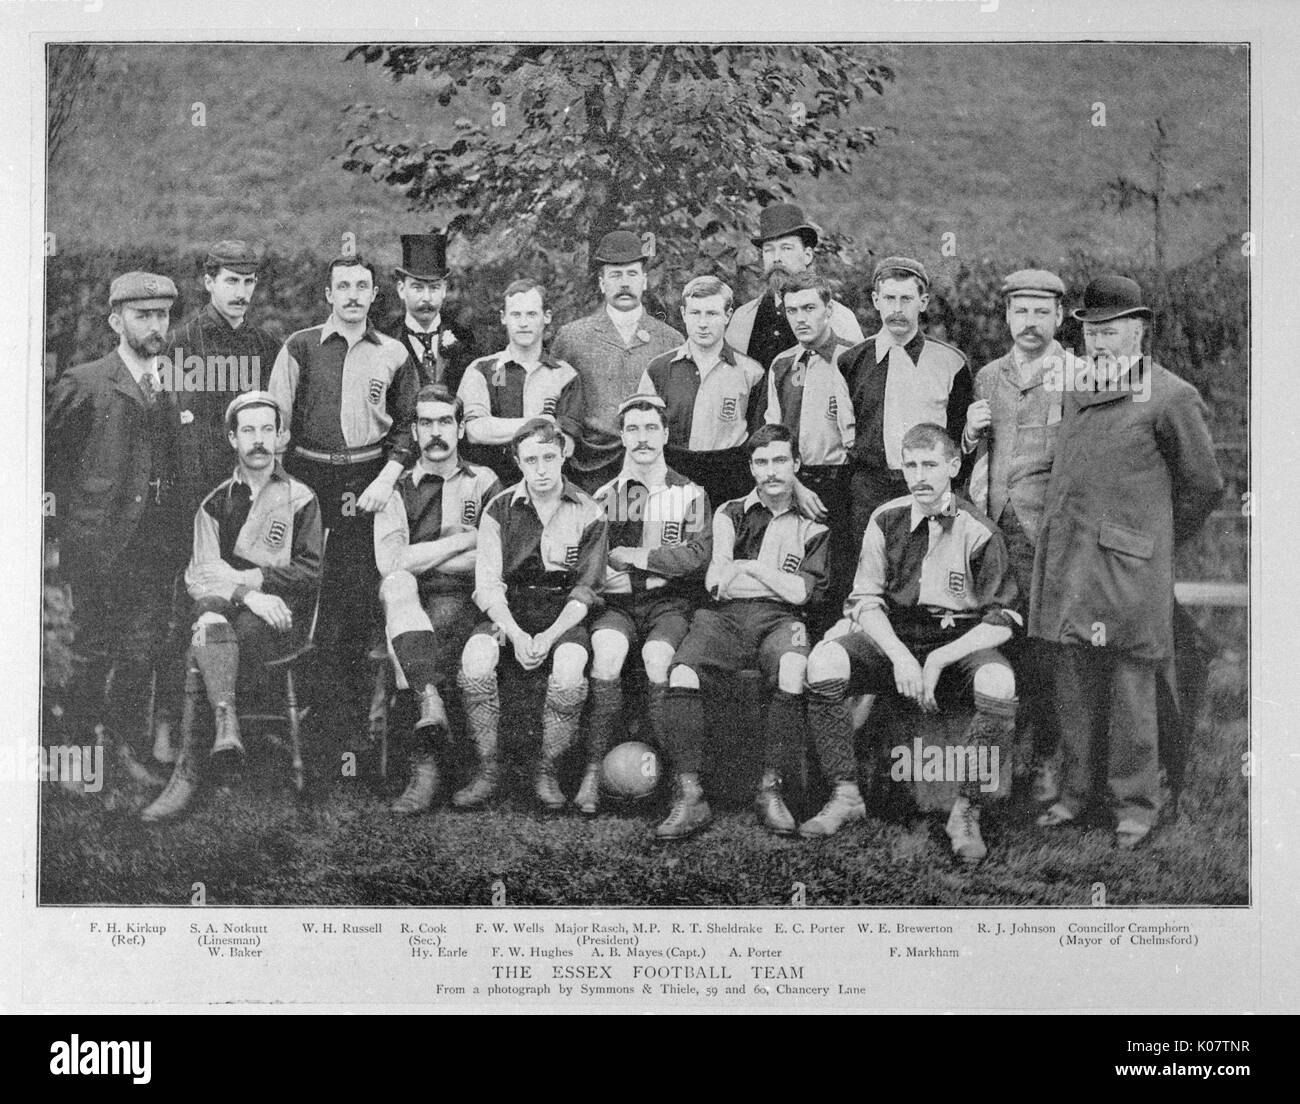 Group photo, Essex football team: Russell, Wells, Sheldrake, Porter, Brewerton, Johnson, Baker, Earle, Hughes, Mayes (Captain), Porter, Markham. With them are the Mayor of Chelmsford (Councillor Cramphorn), Secretary (R Cook), Referee (Kirkup), Linesman (Notkutt) and President (Major Rasch).  1894 - Stock Image